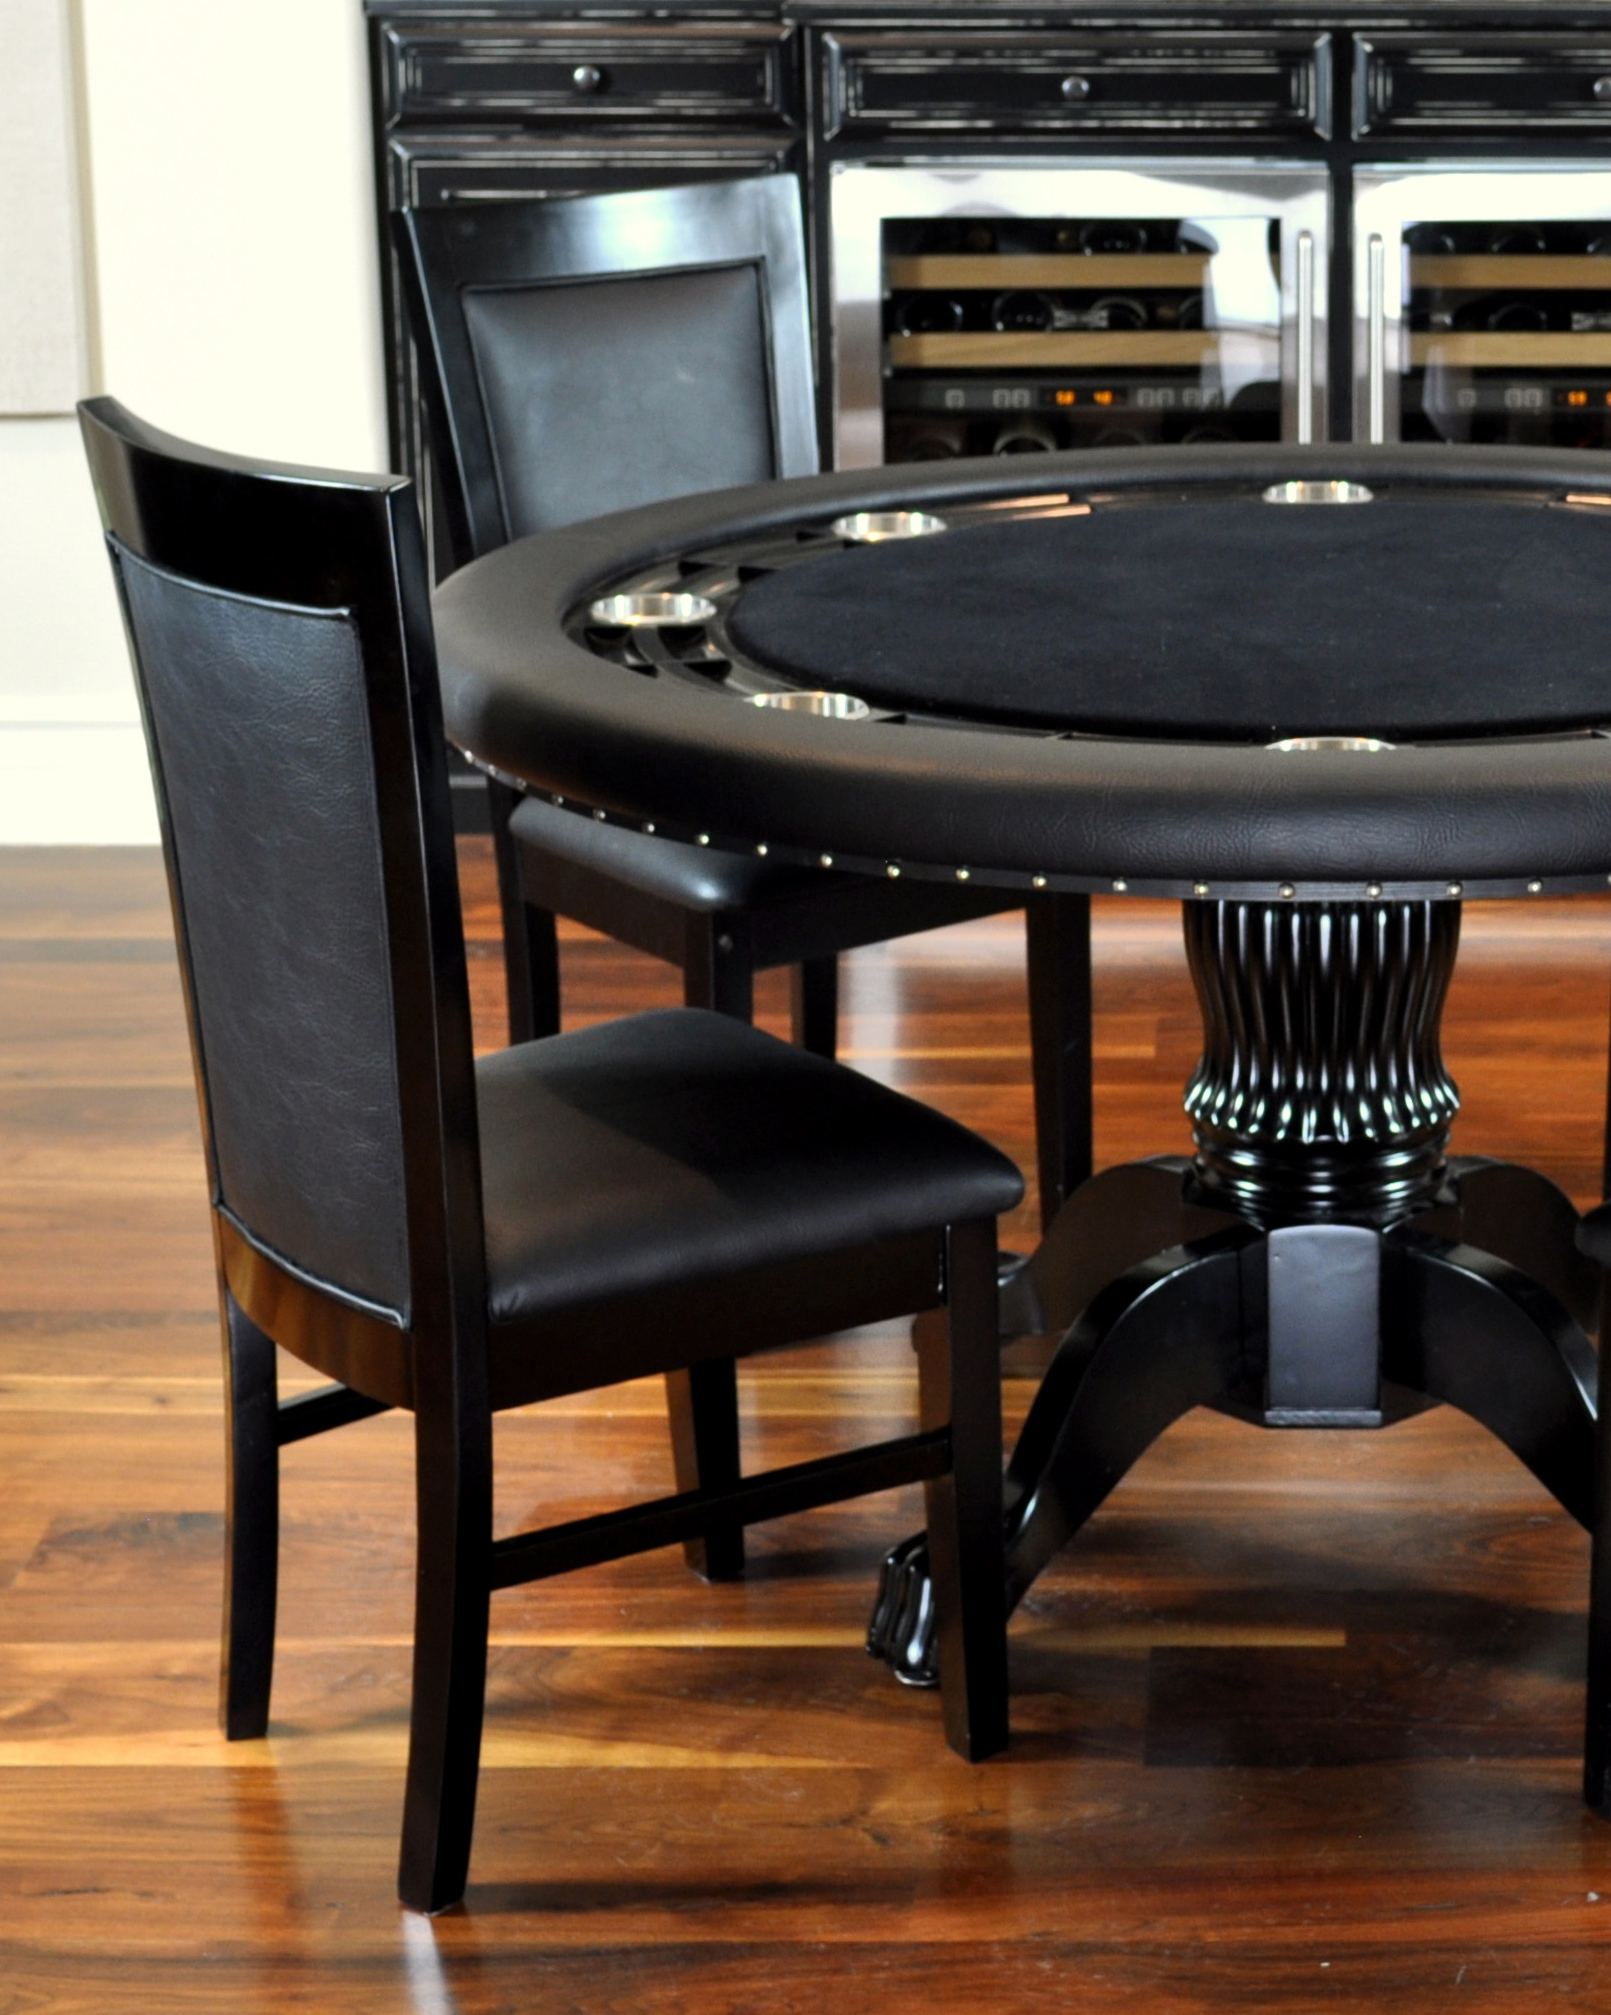 Nighthawk round poker table welcome to tables canada